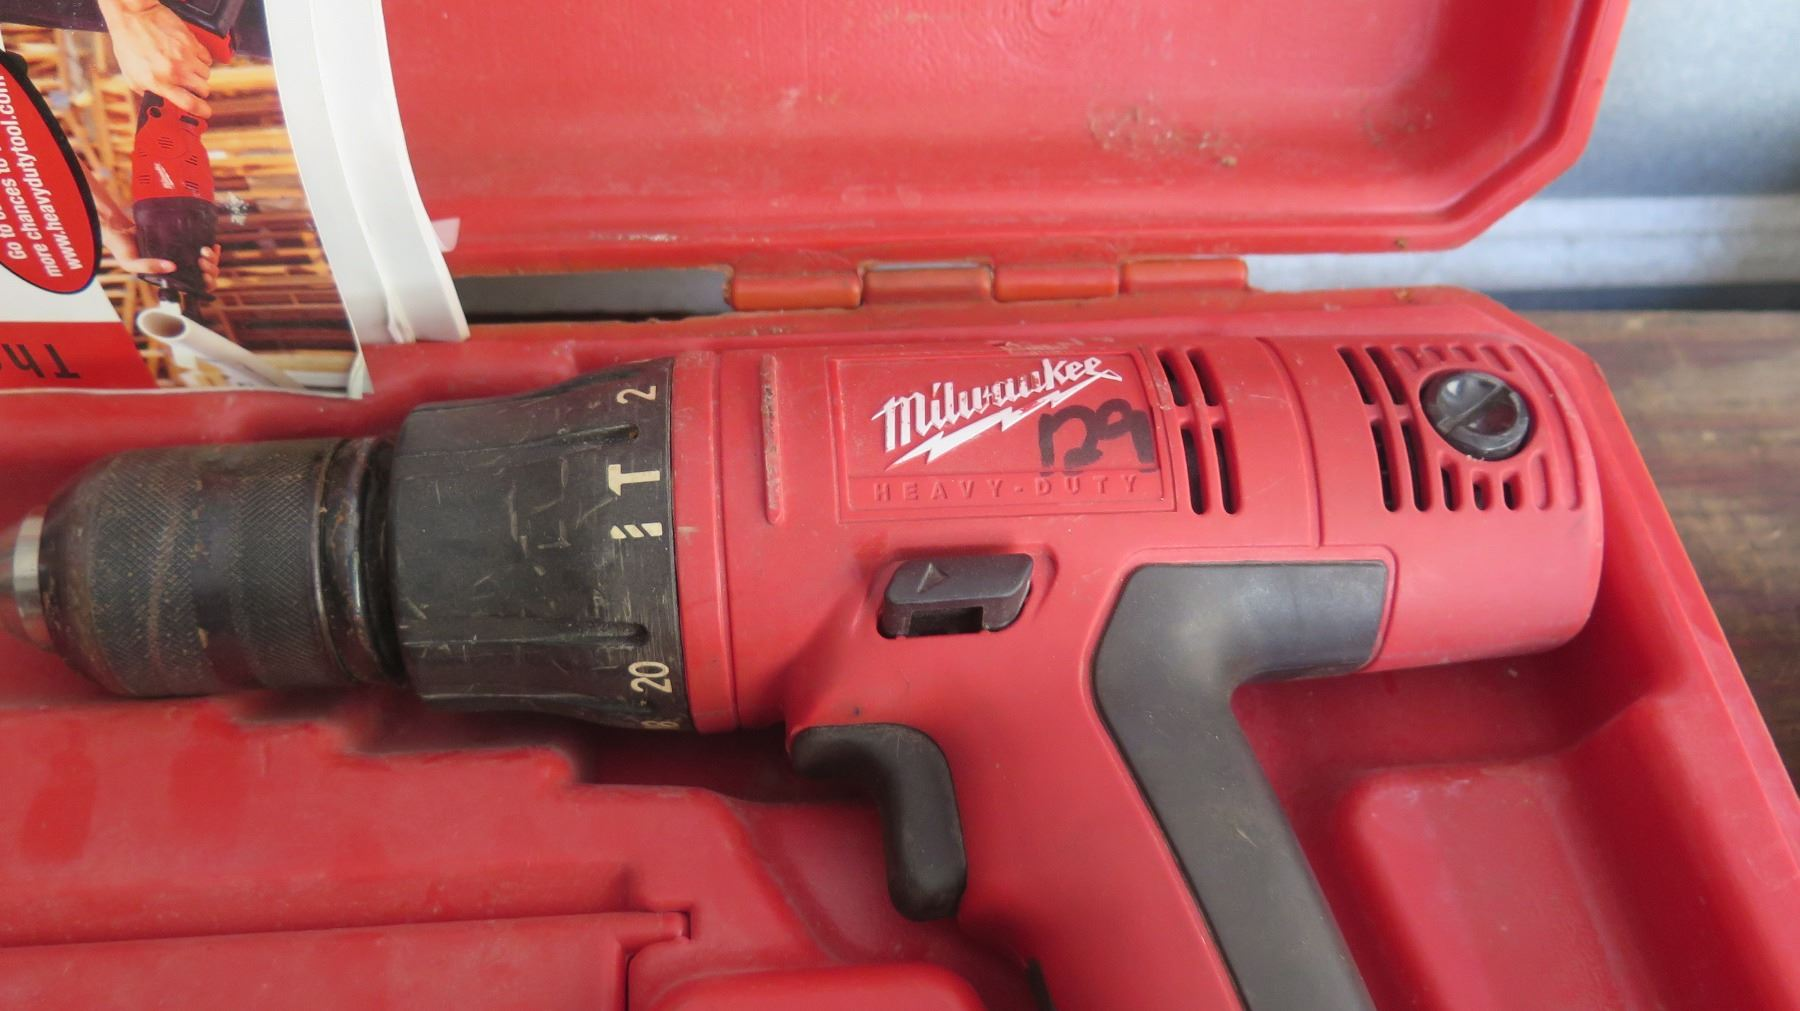 image 6 milwaukee cordless hammer drill and band saw wbattery